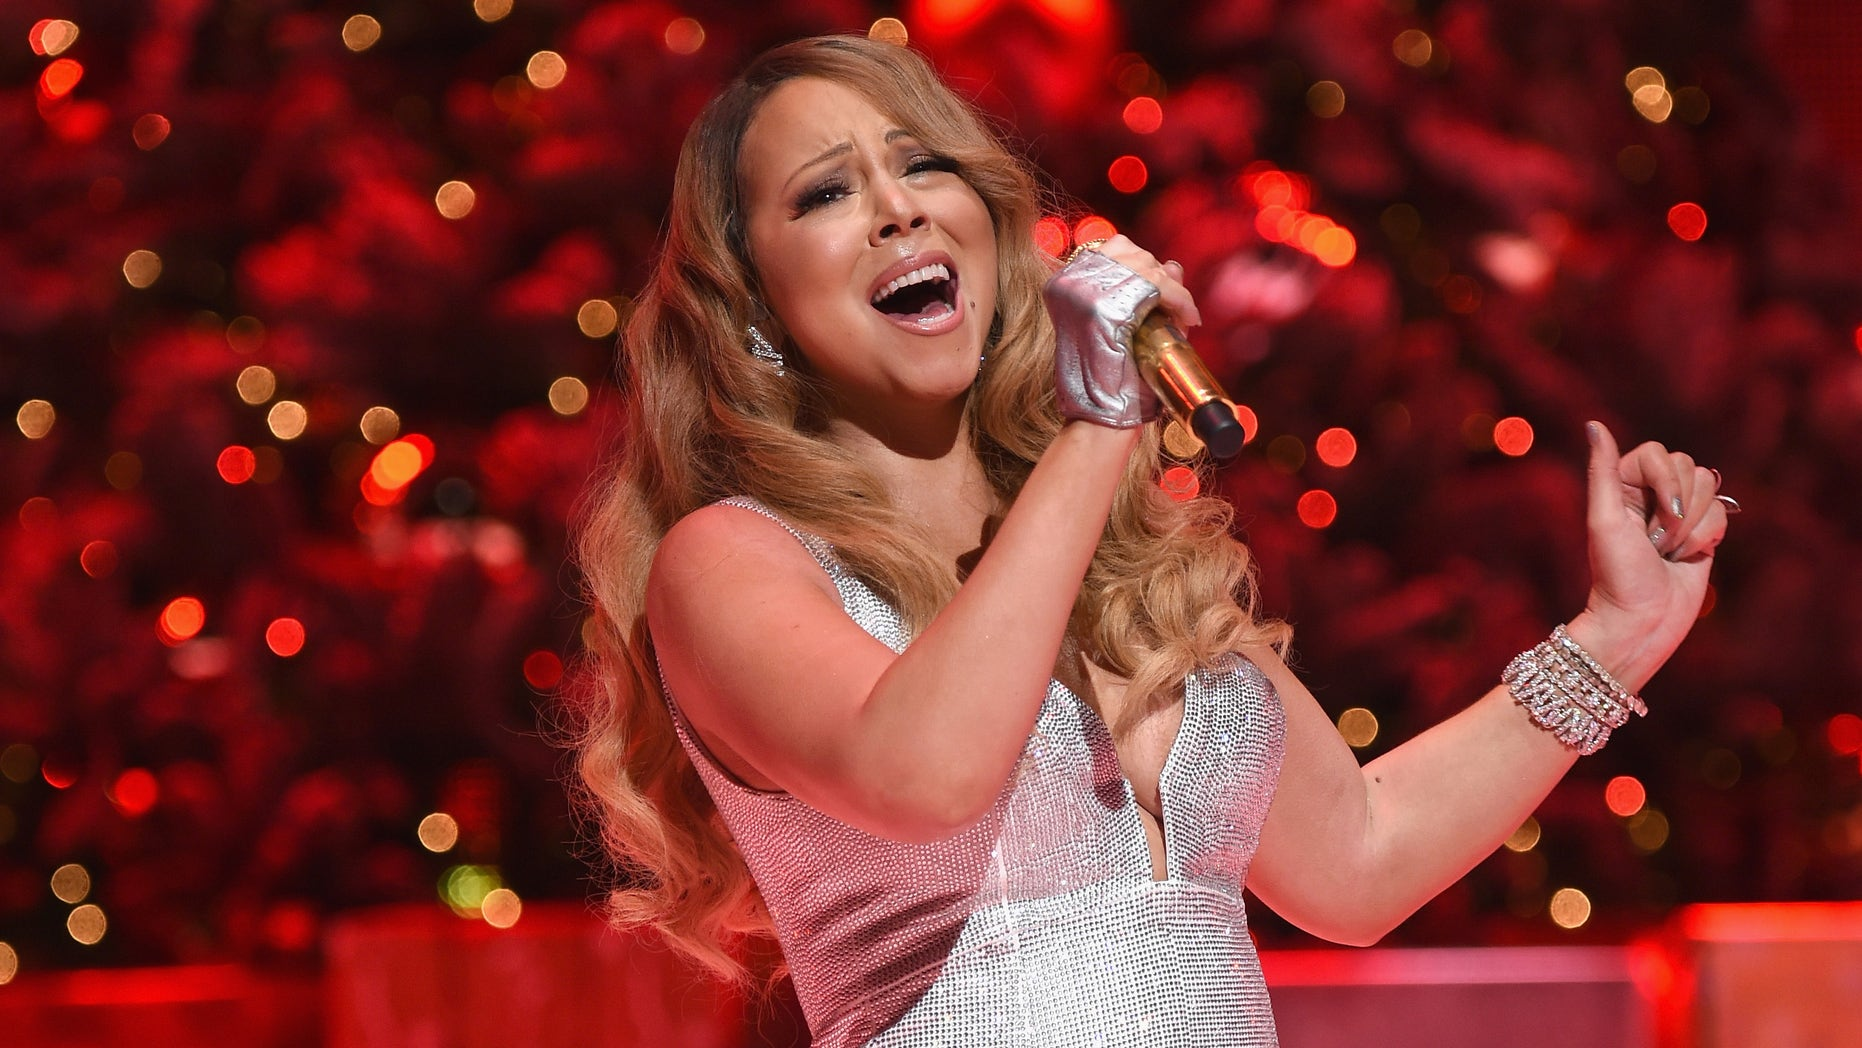 "Queen of Christmas, Mariah Carey performs her holiday smash hits at the Beacon Theater on December 1<div class=""e3lan e3lan-in-post1""><script async src=""//pagead2.googlesyndication.com/pagead/js/adsbygoogle.js""></script>